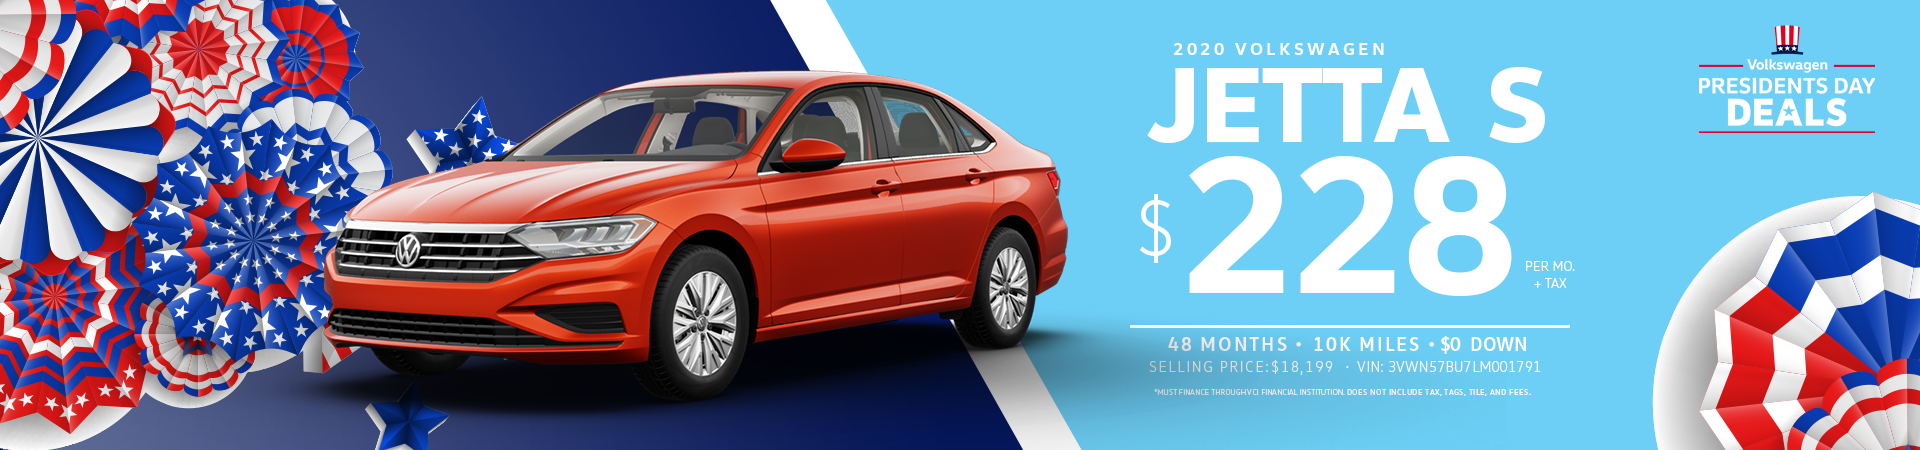 Lease a 2020 Jetta S for $228 a month